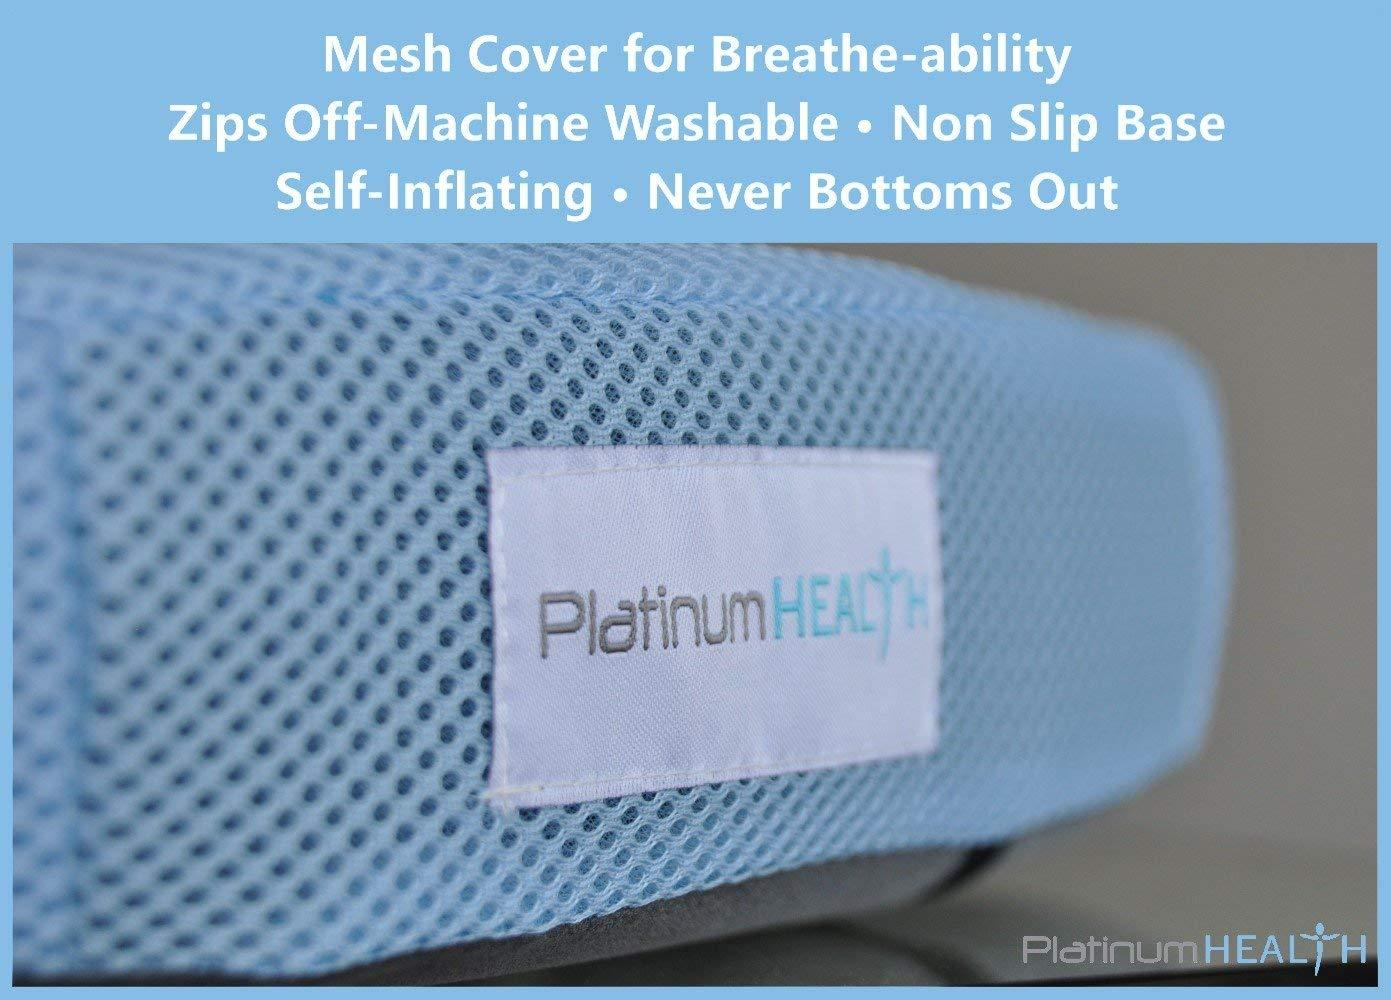 AIR-LOGIC PREMIUM SEAT CUSHION breathable mesh cover, washable, non slip base